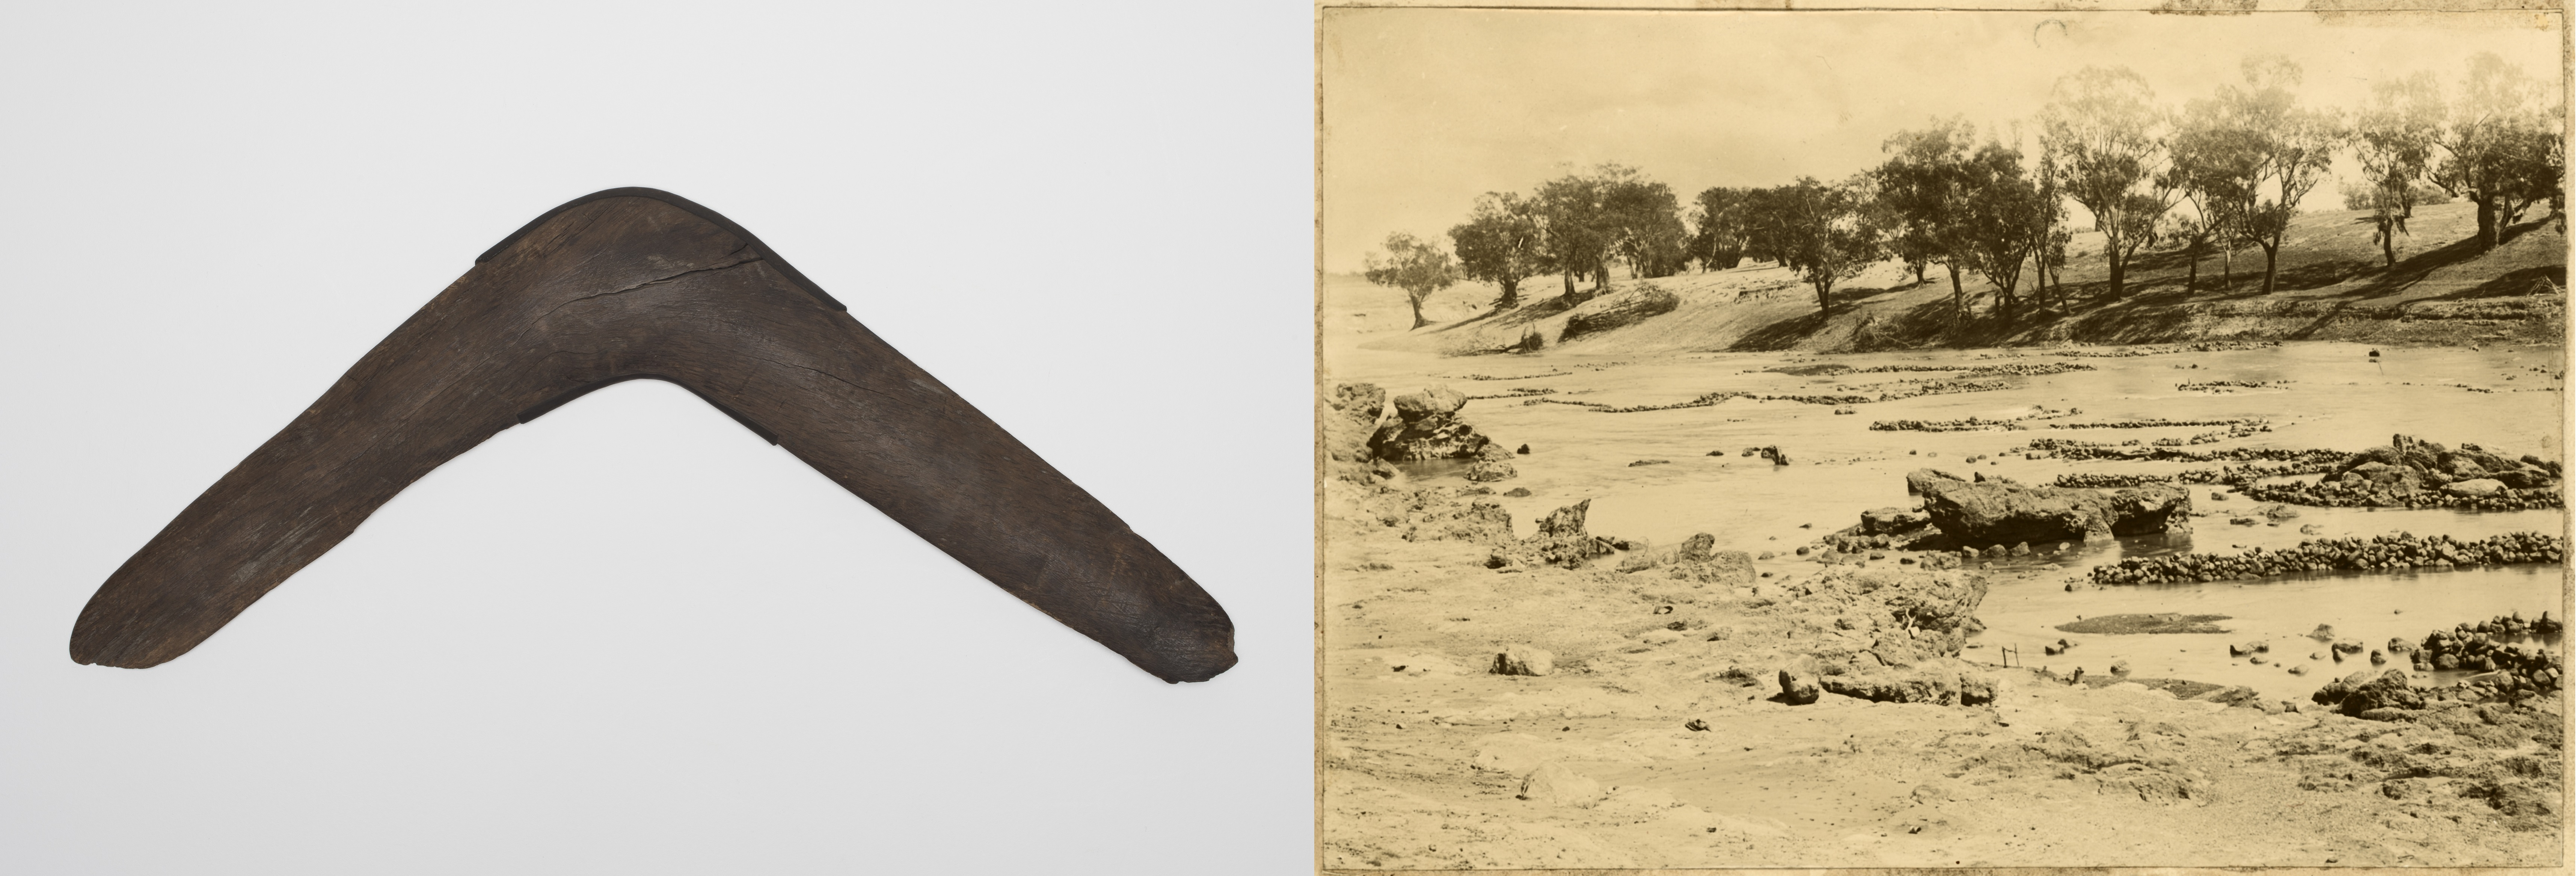 Two images side by side. Left: simple wooden boomerang. Right: sepia photograph of a river system featuring Indigenous-designed fish traps.